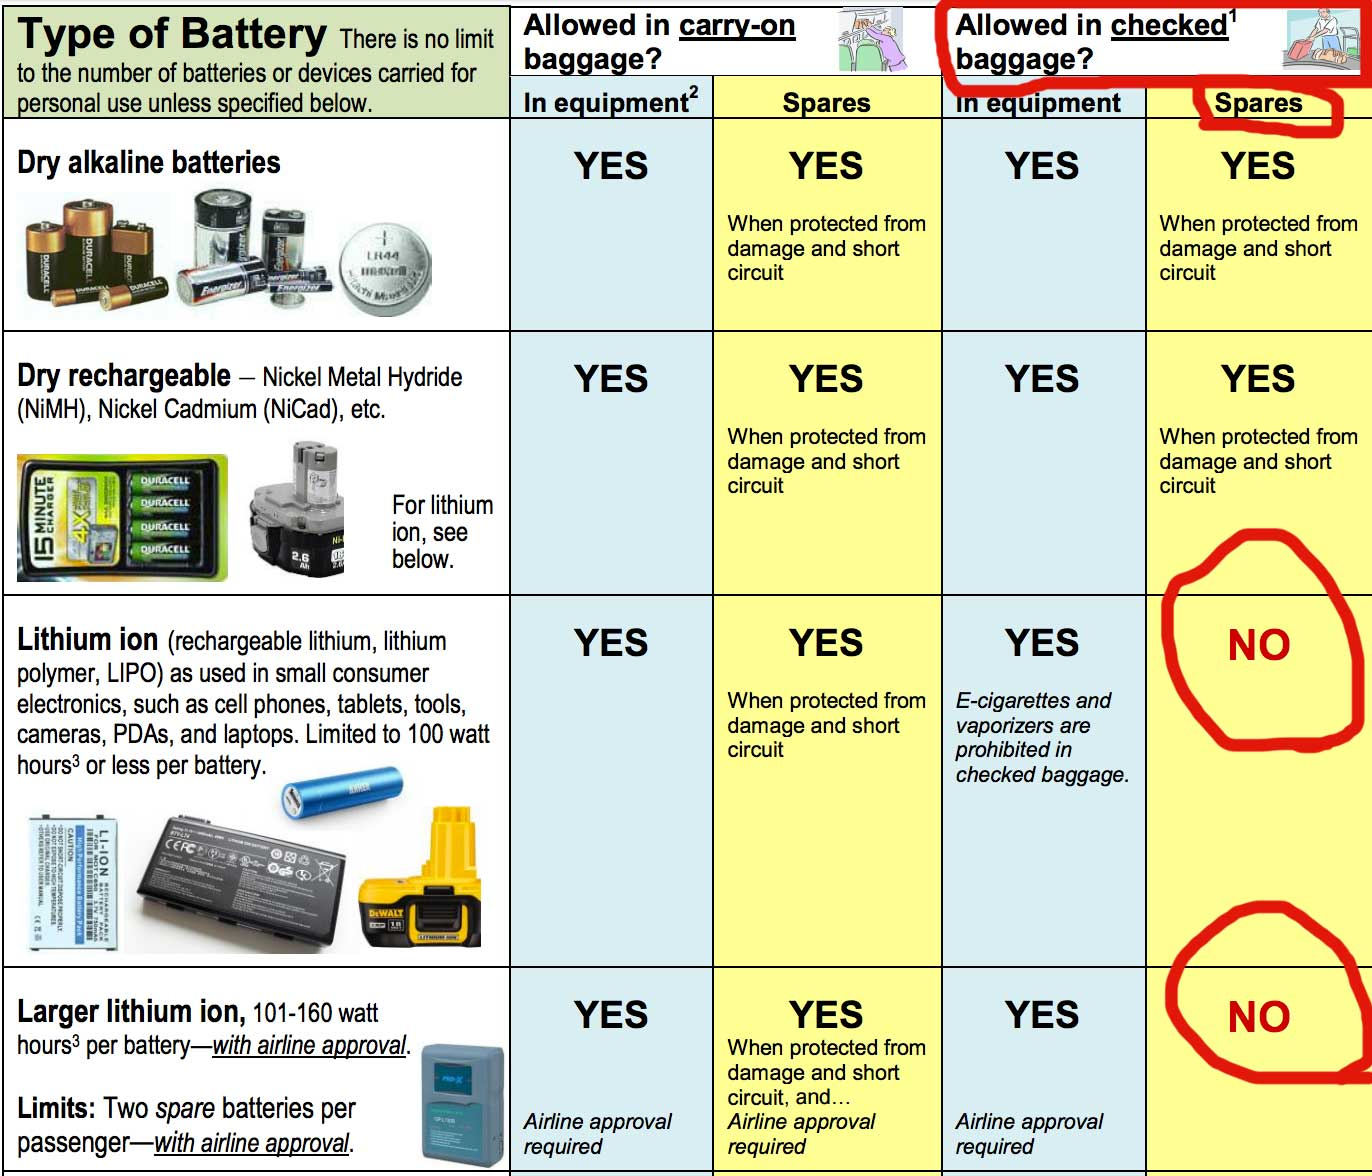 Drone Battery Life >> Holiday Travelers - do not check luggage or cases with your drone batteries - Droneflyers.com